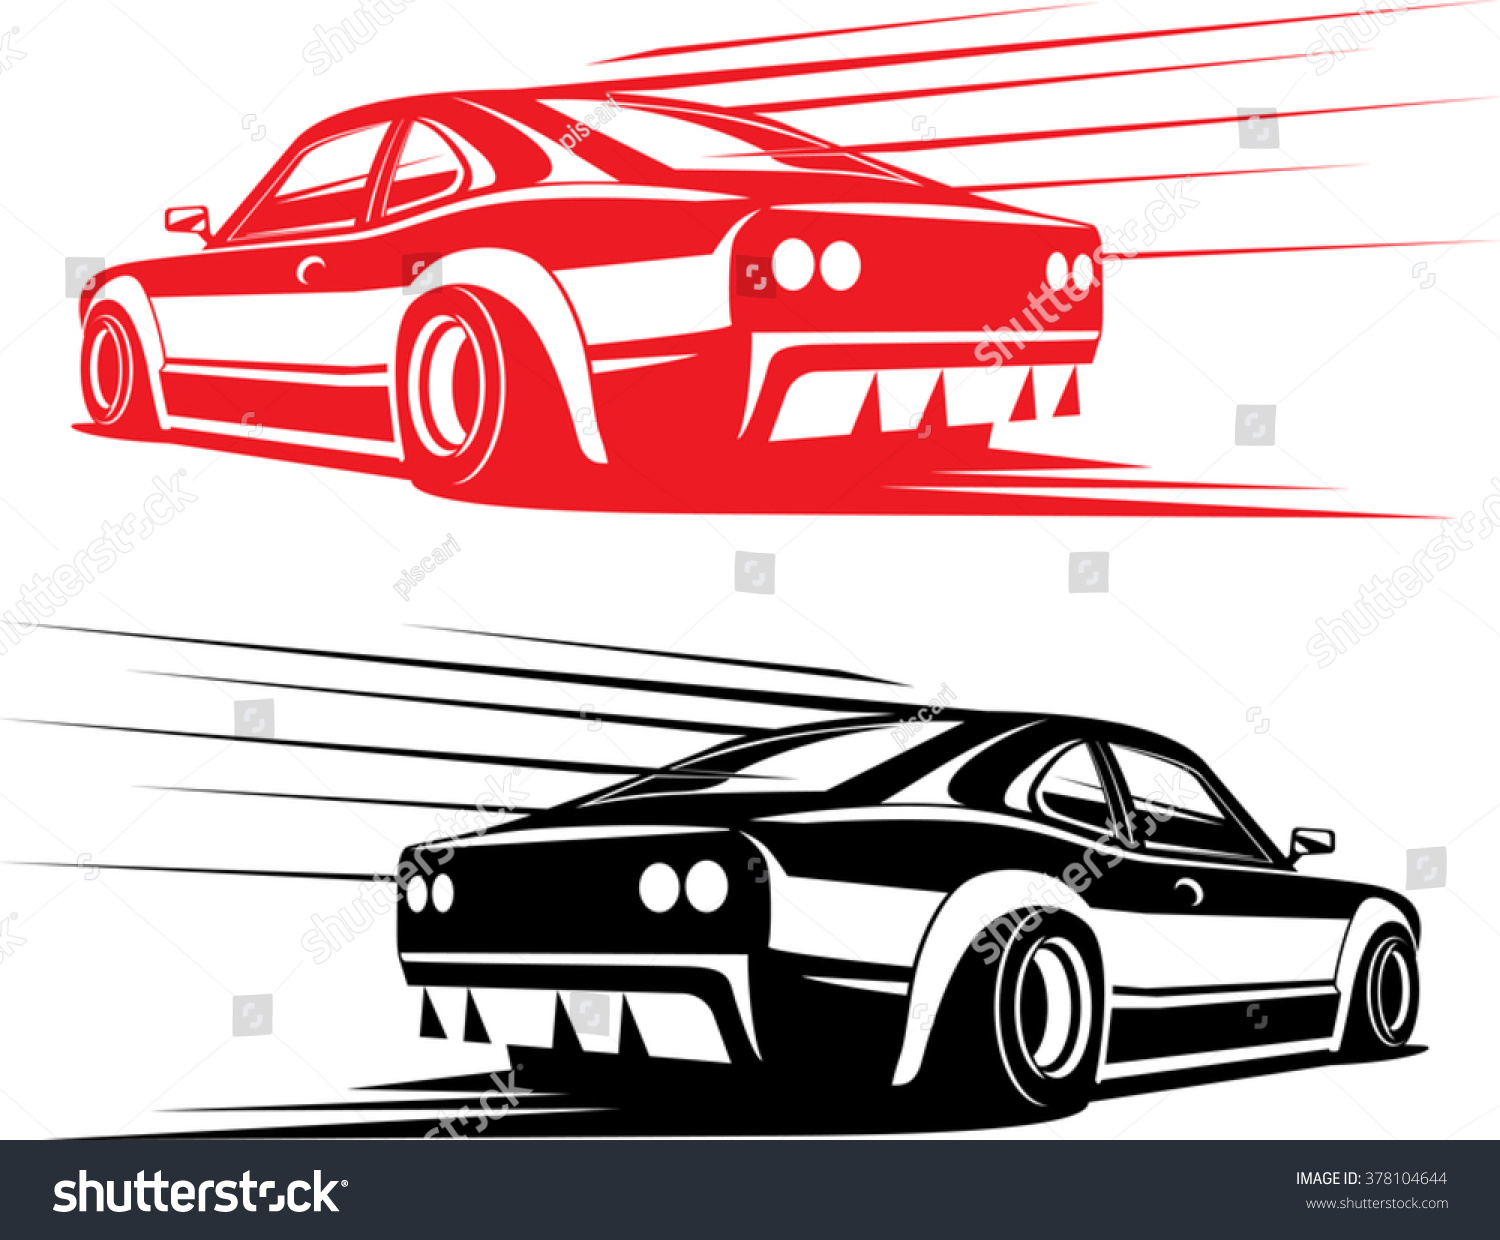 Simple car sticker design - Red And Black Fast Sport Car Silhouettes Isolated On White Simple Design Great To